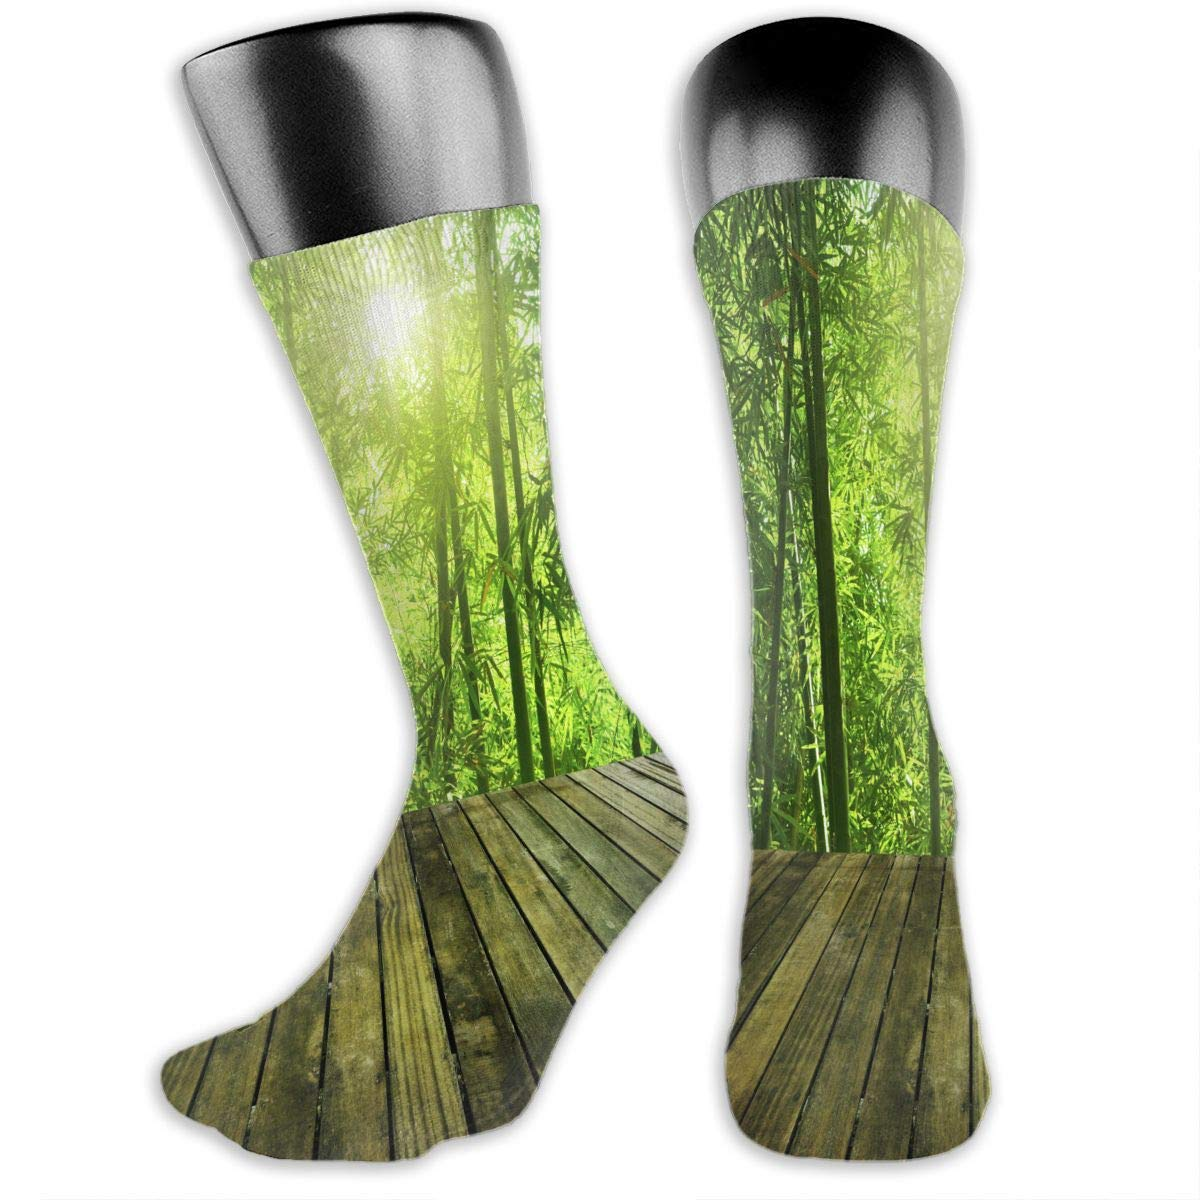 Bamboo Forest Mens Dress Socks Novelty Athletic Socks 15.7